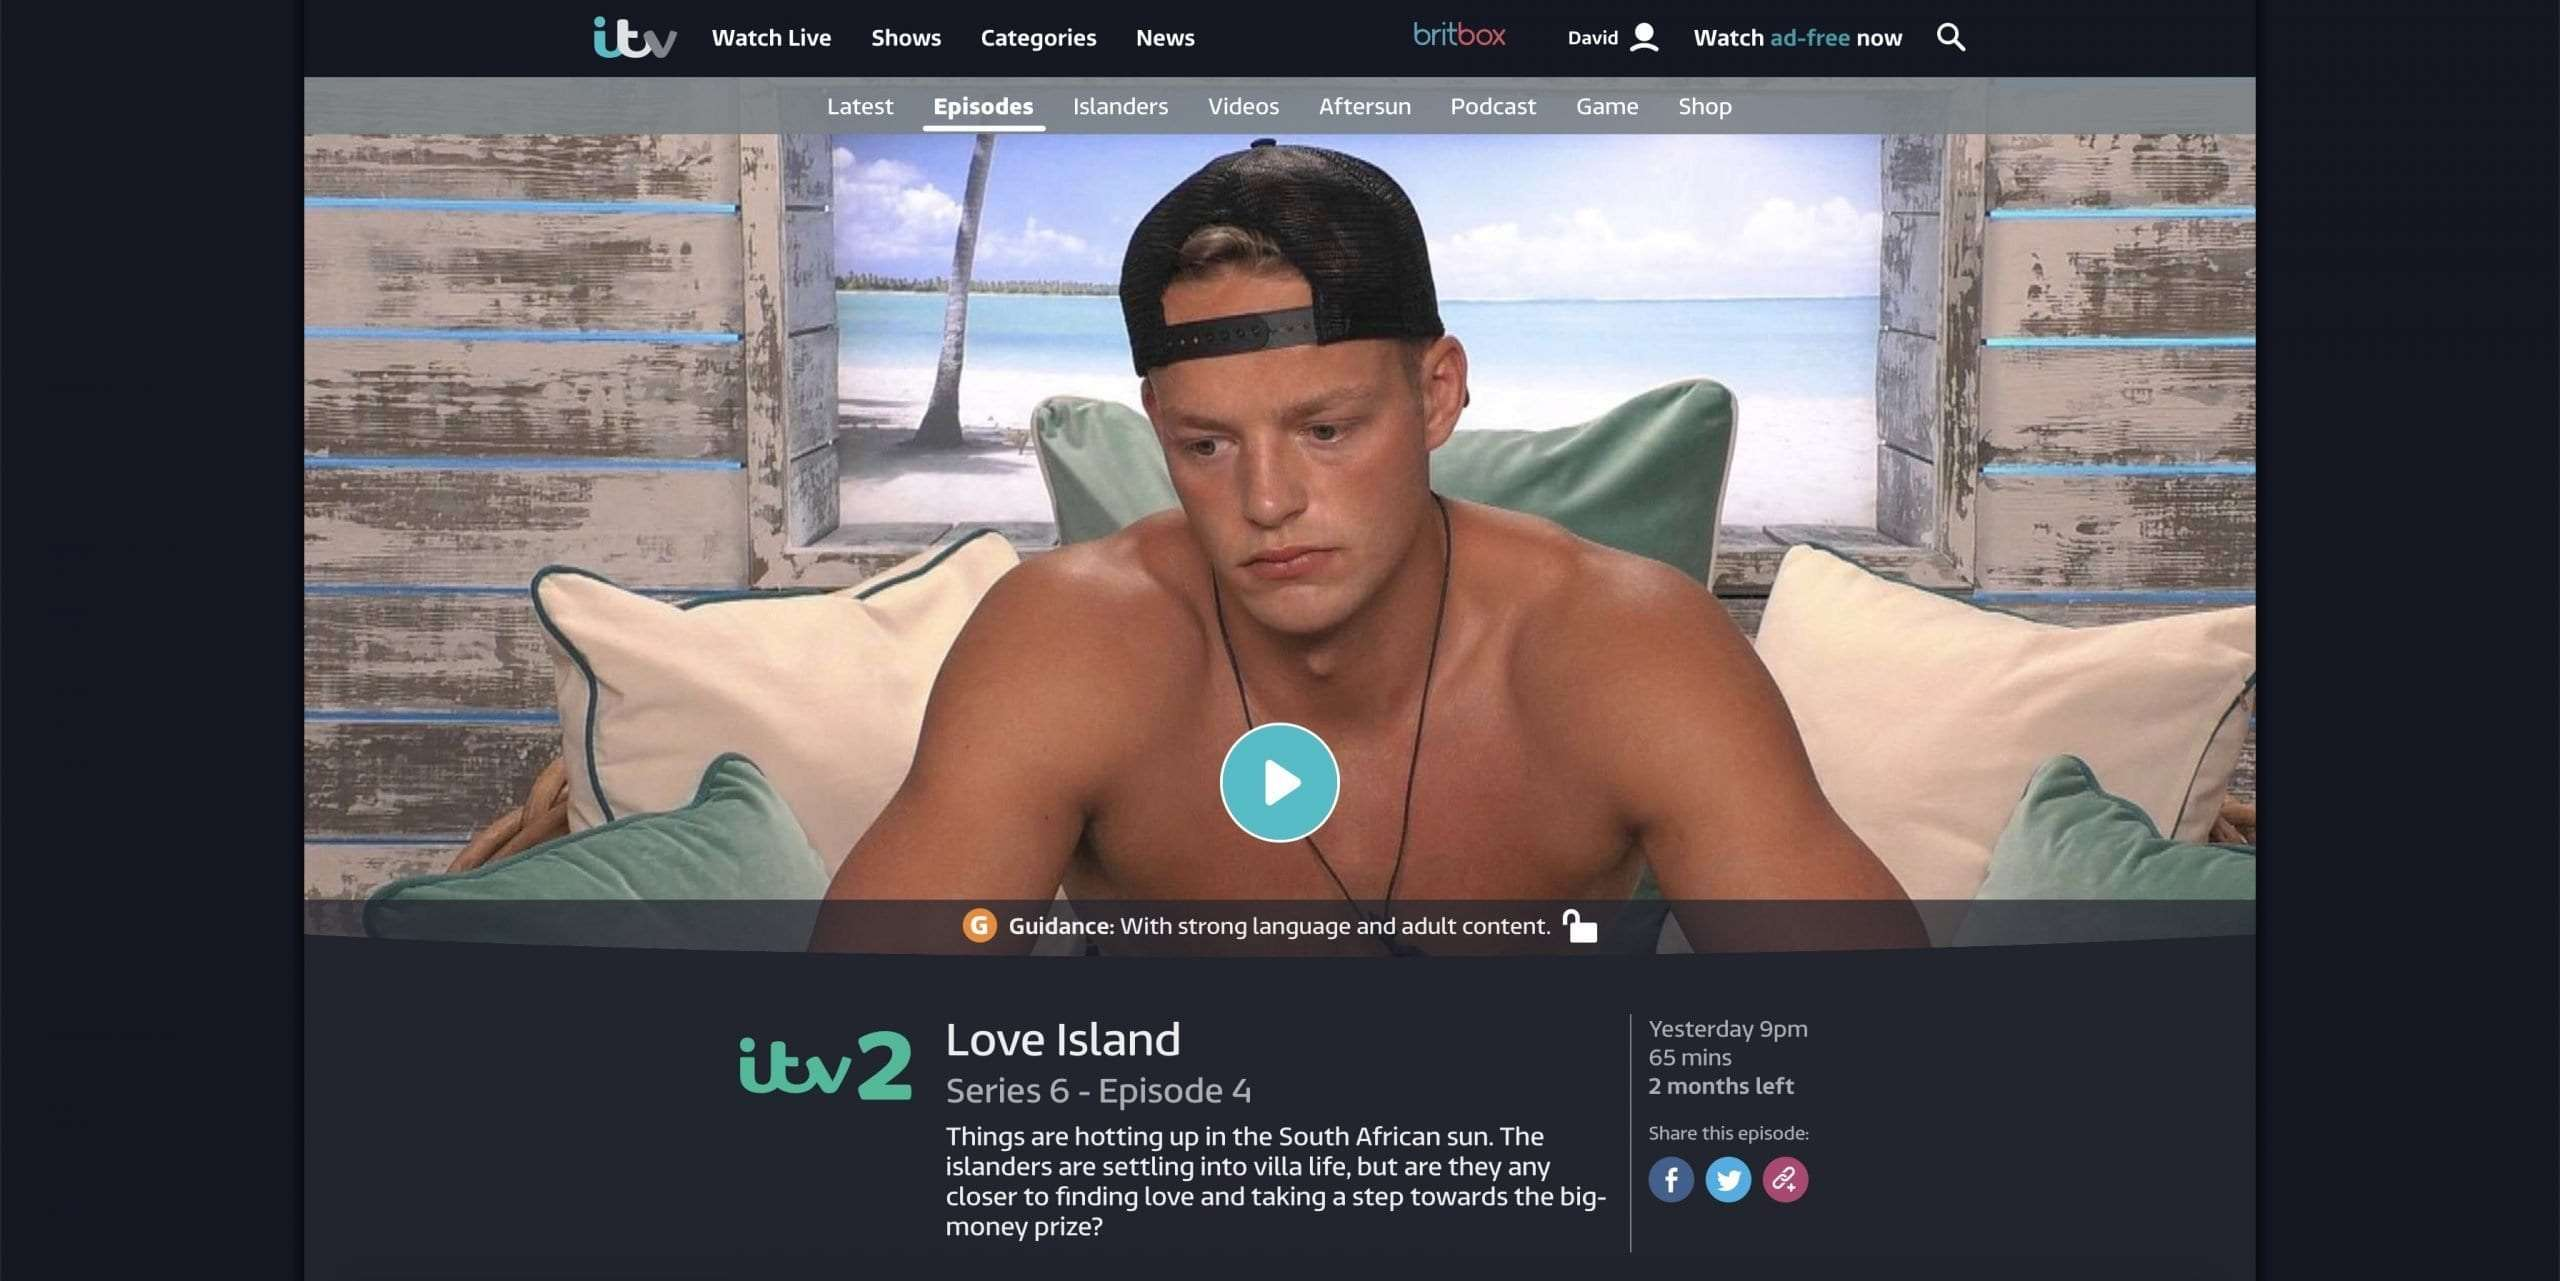 ITV Hub not working with VPN?